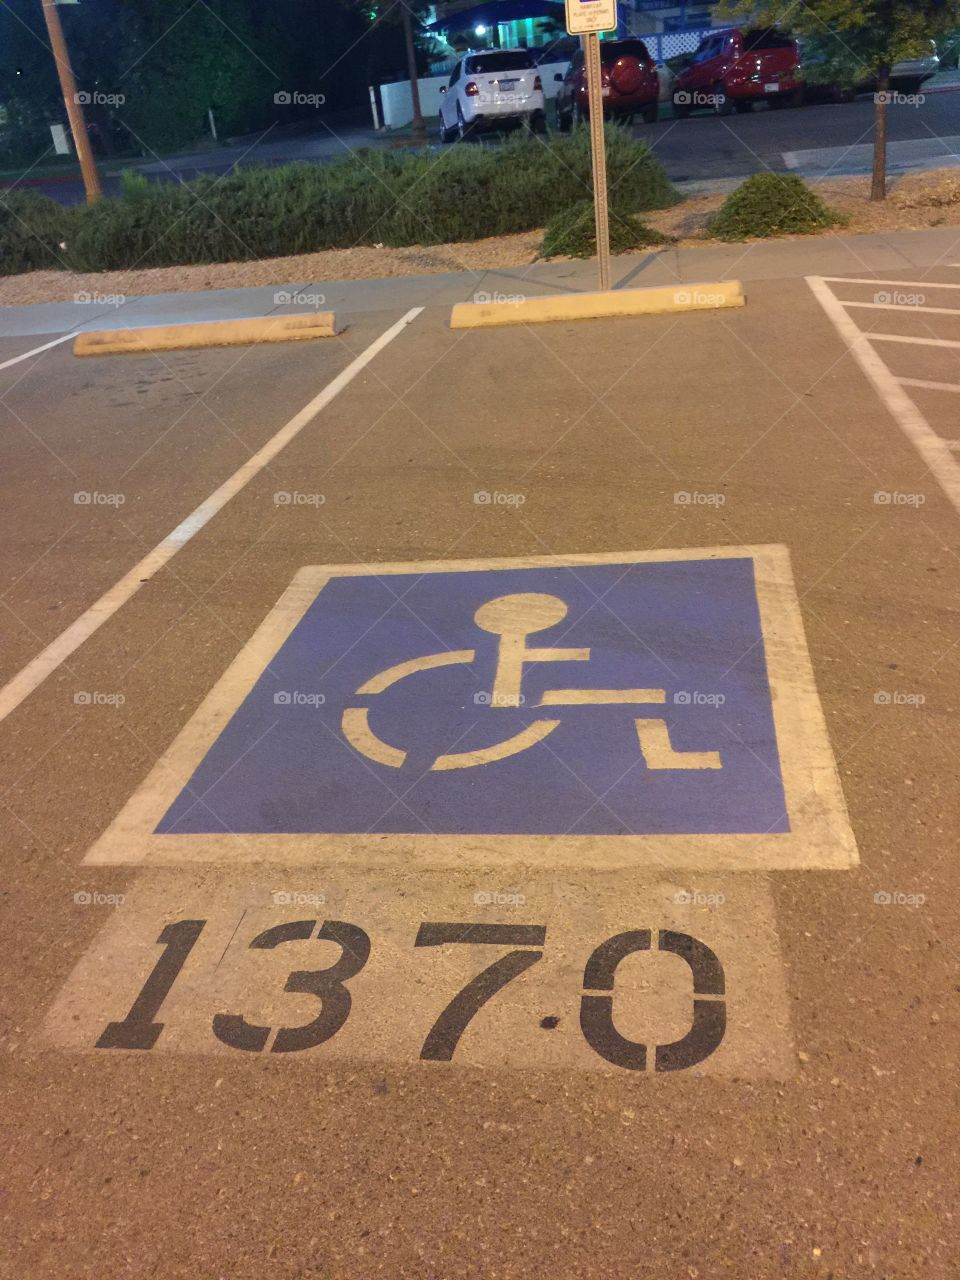 Disable parking space